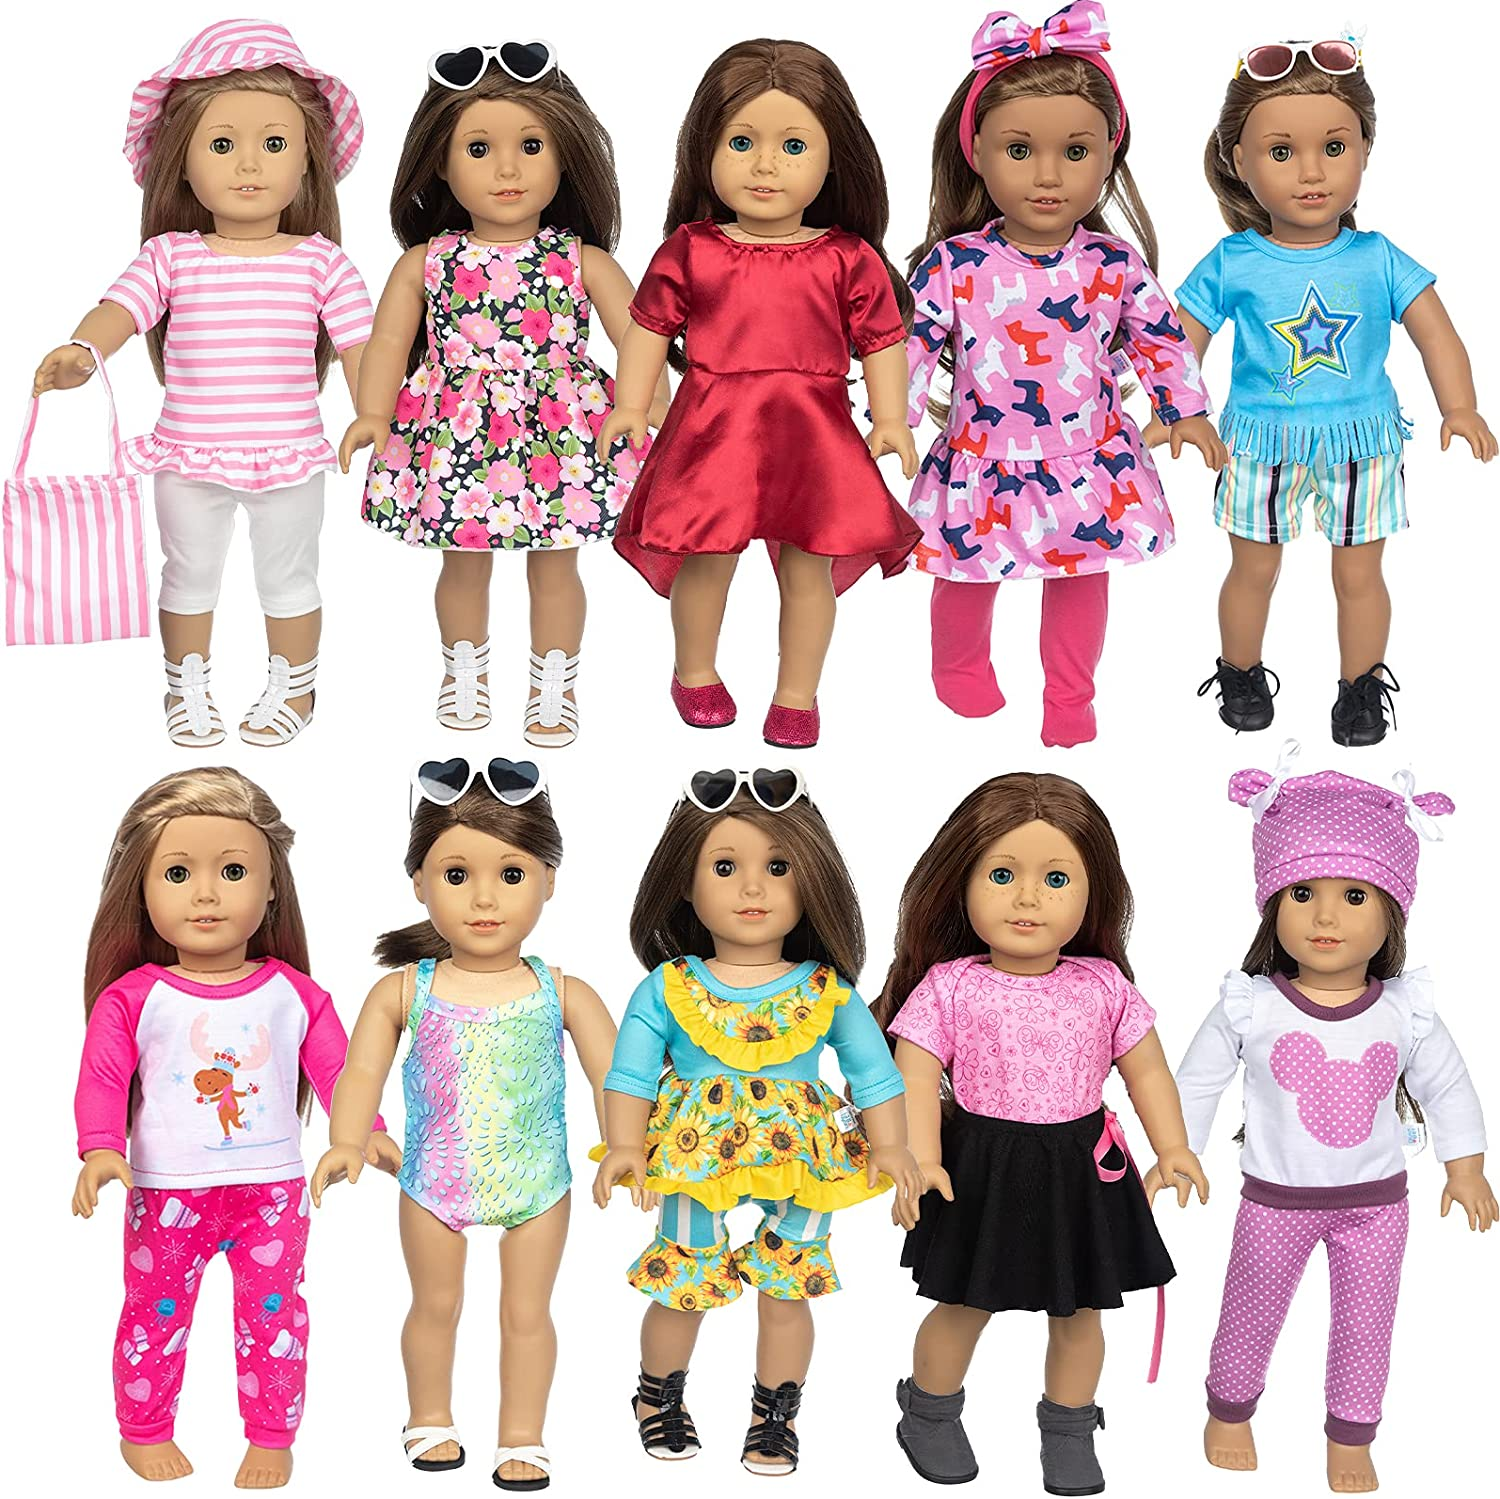 BDDOLL 23 Pcs American 18 Inch and Max 64% Financial sales sale OFF Girl Clothes Doll Accessories